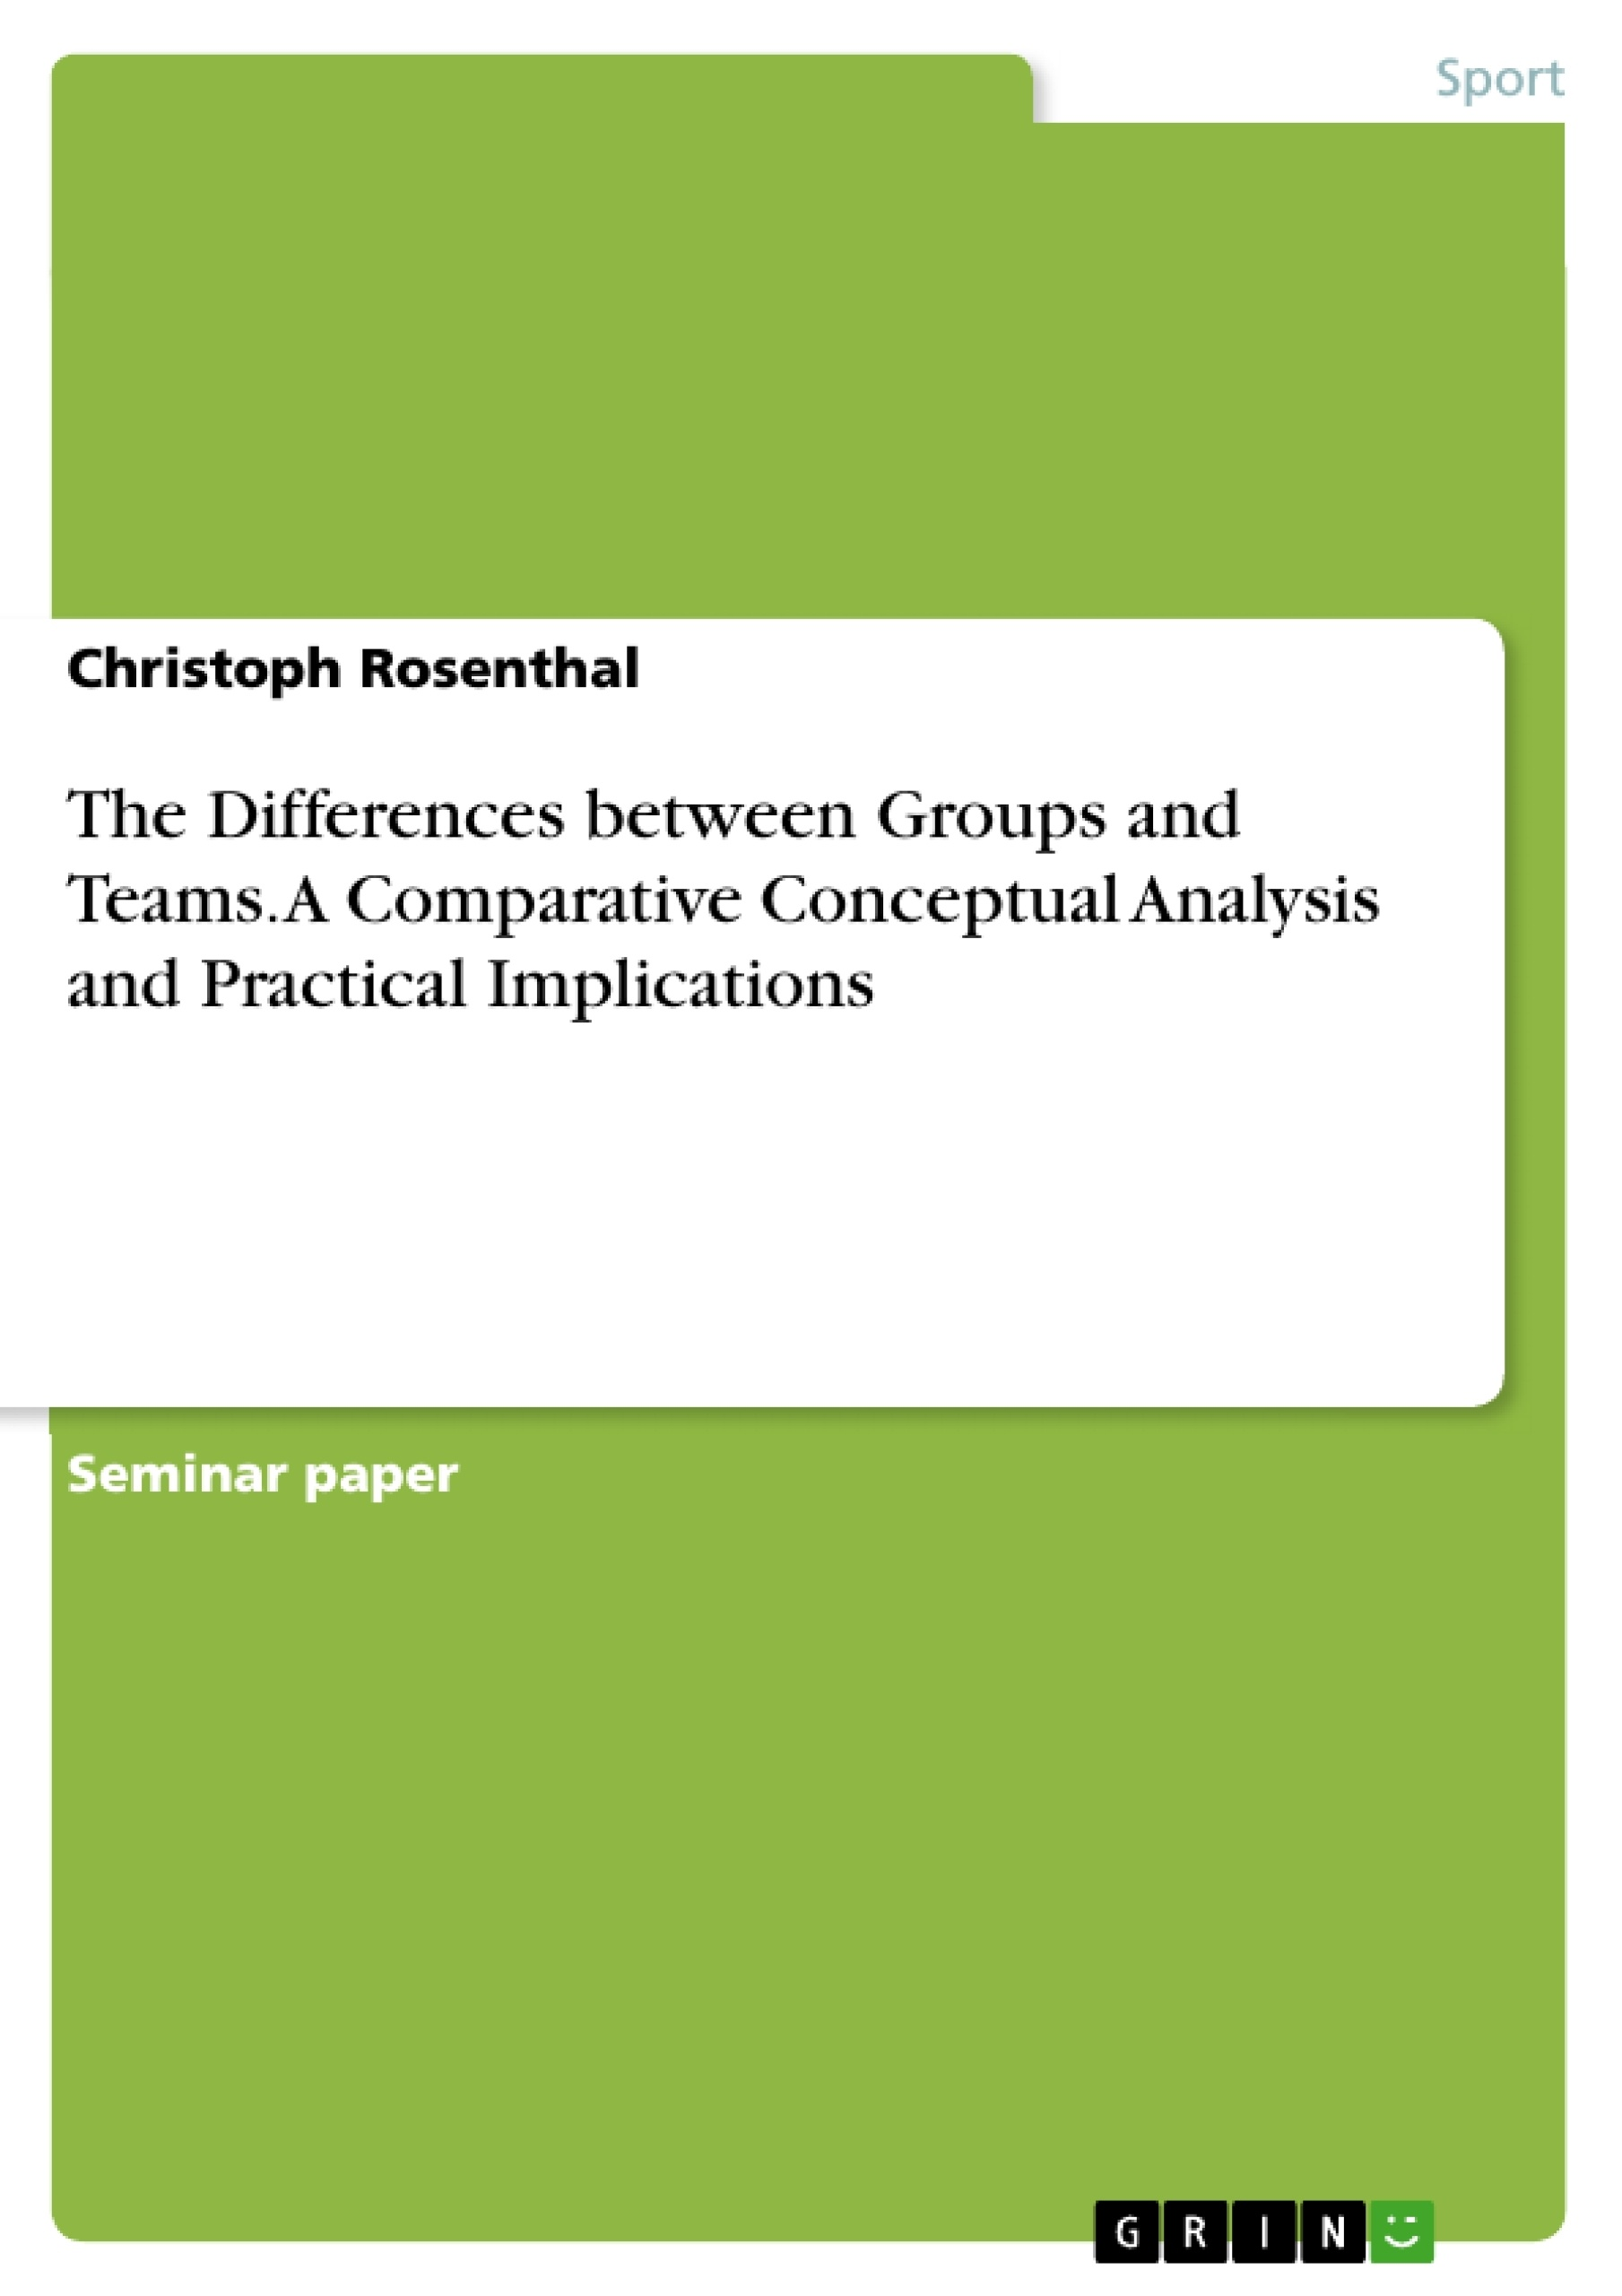 Title: The Differences between Groups and Teams. A Comparative Conceptual Analysis and Practical Implications